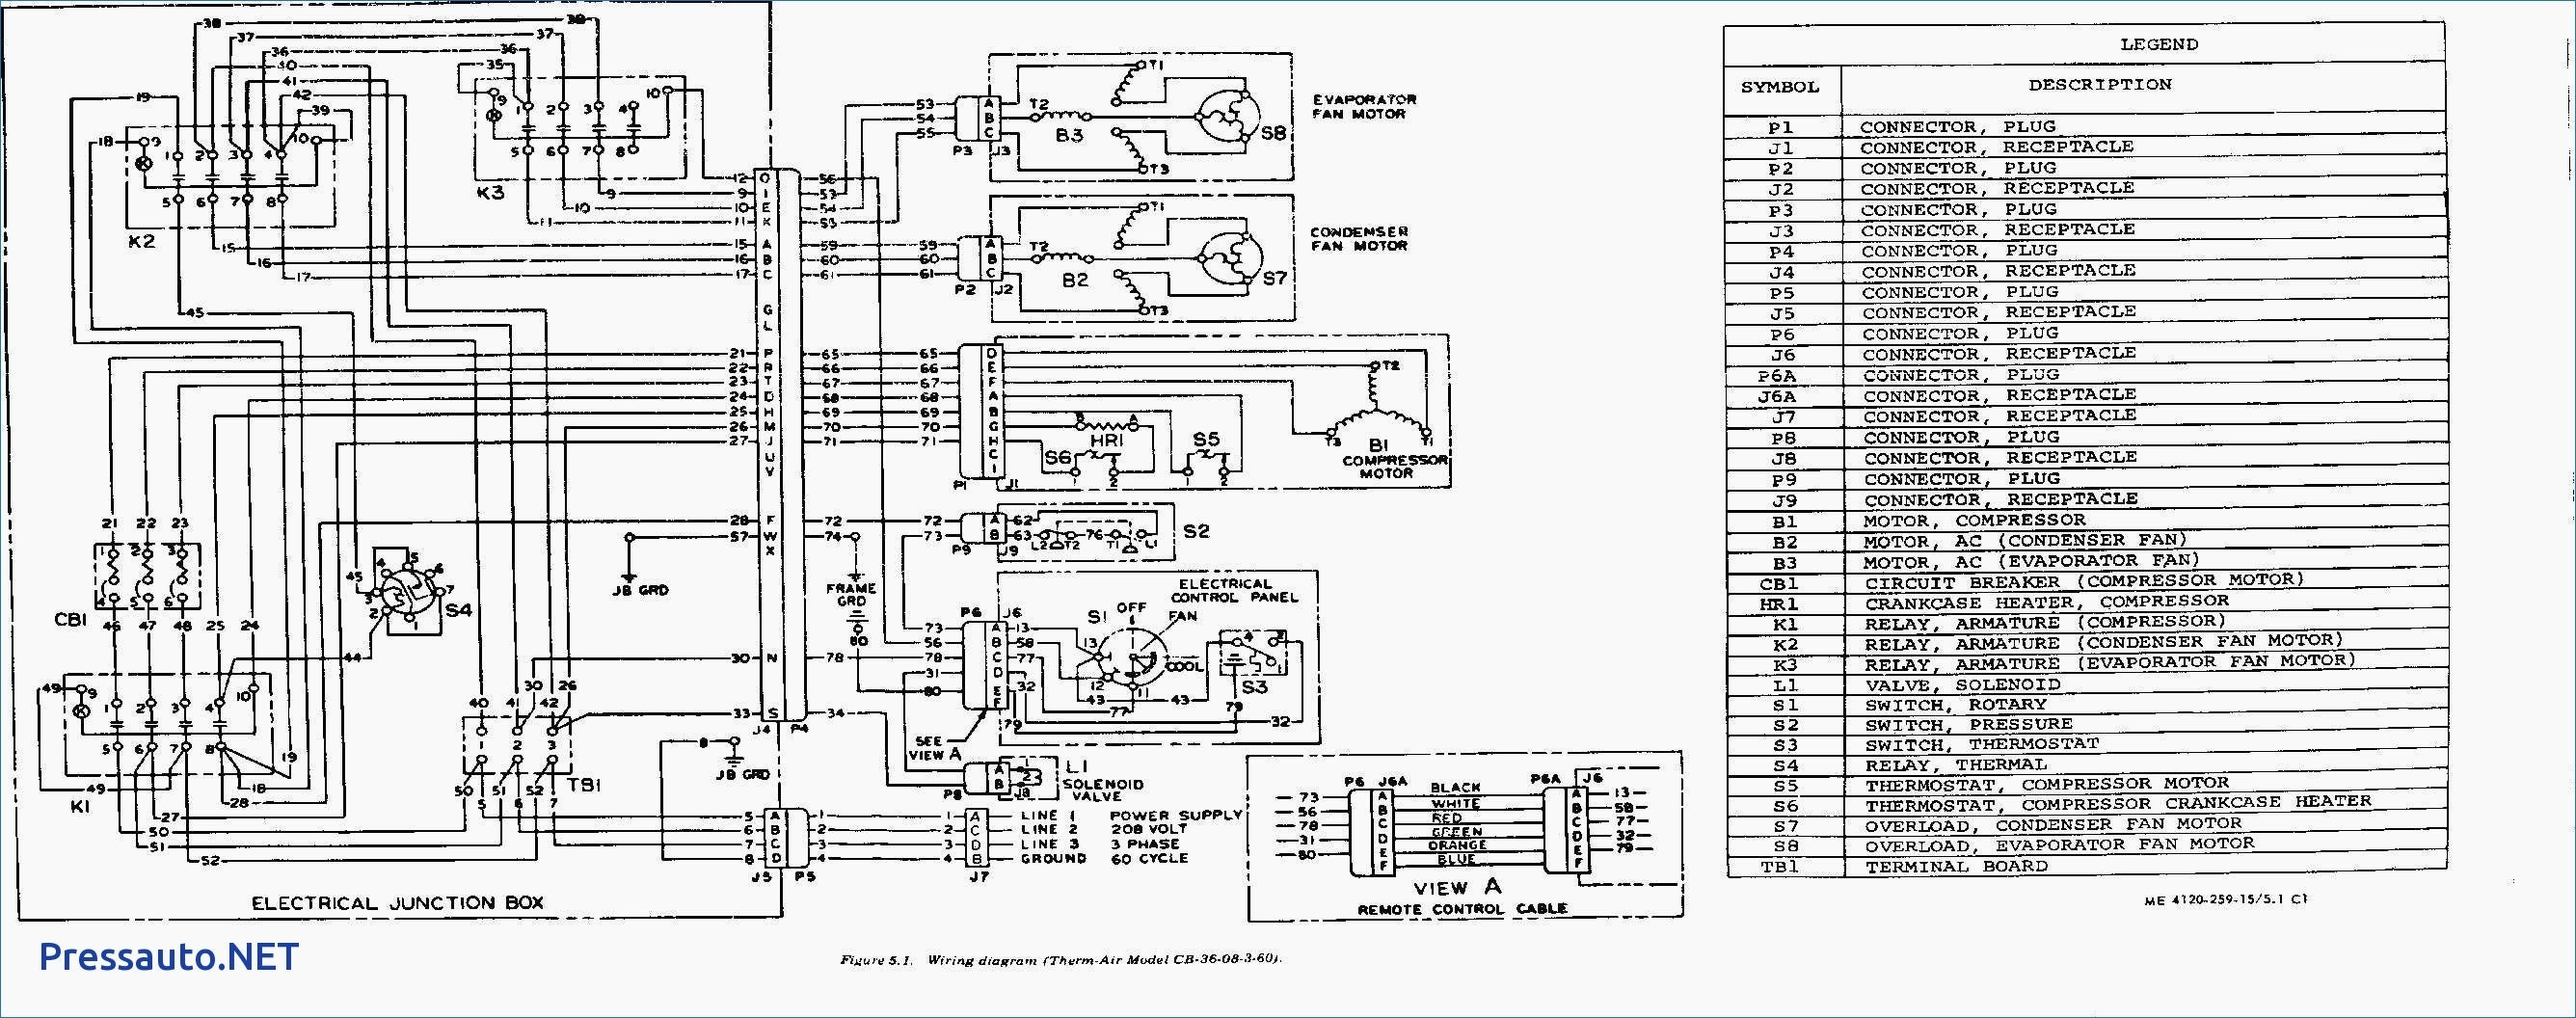 Trane Air Conditioner Wiring Diagram Inspirational Trane Wiring Diagrams Diagram